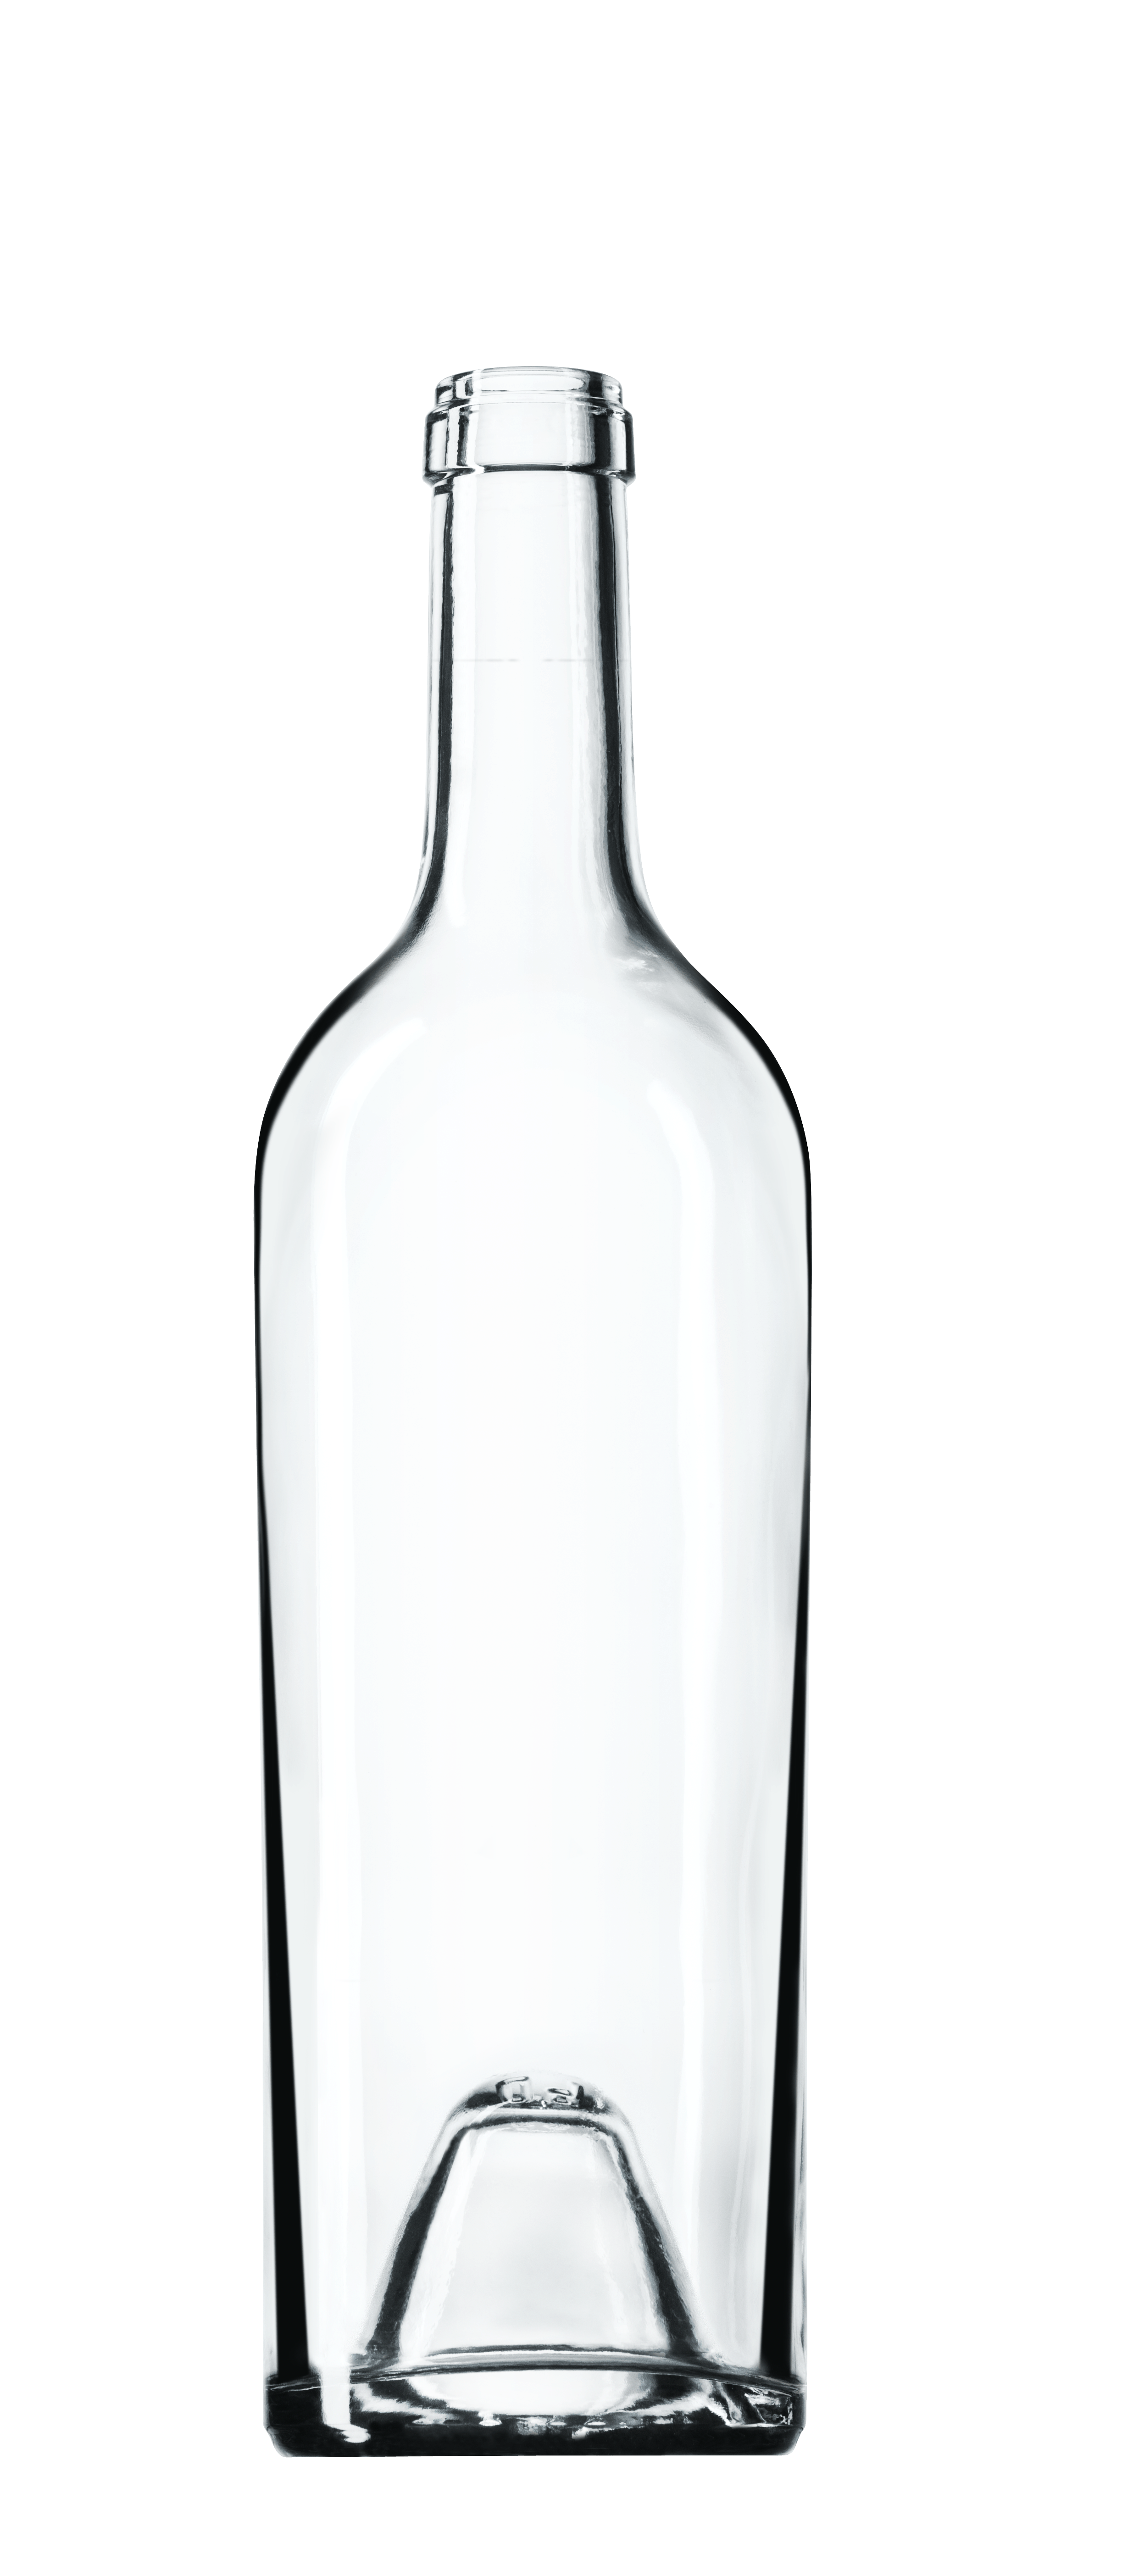 Renaissance Wine bottle sold by SGP Packaging by Verallia